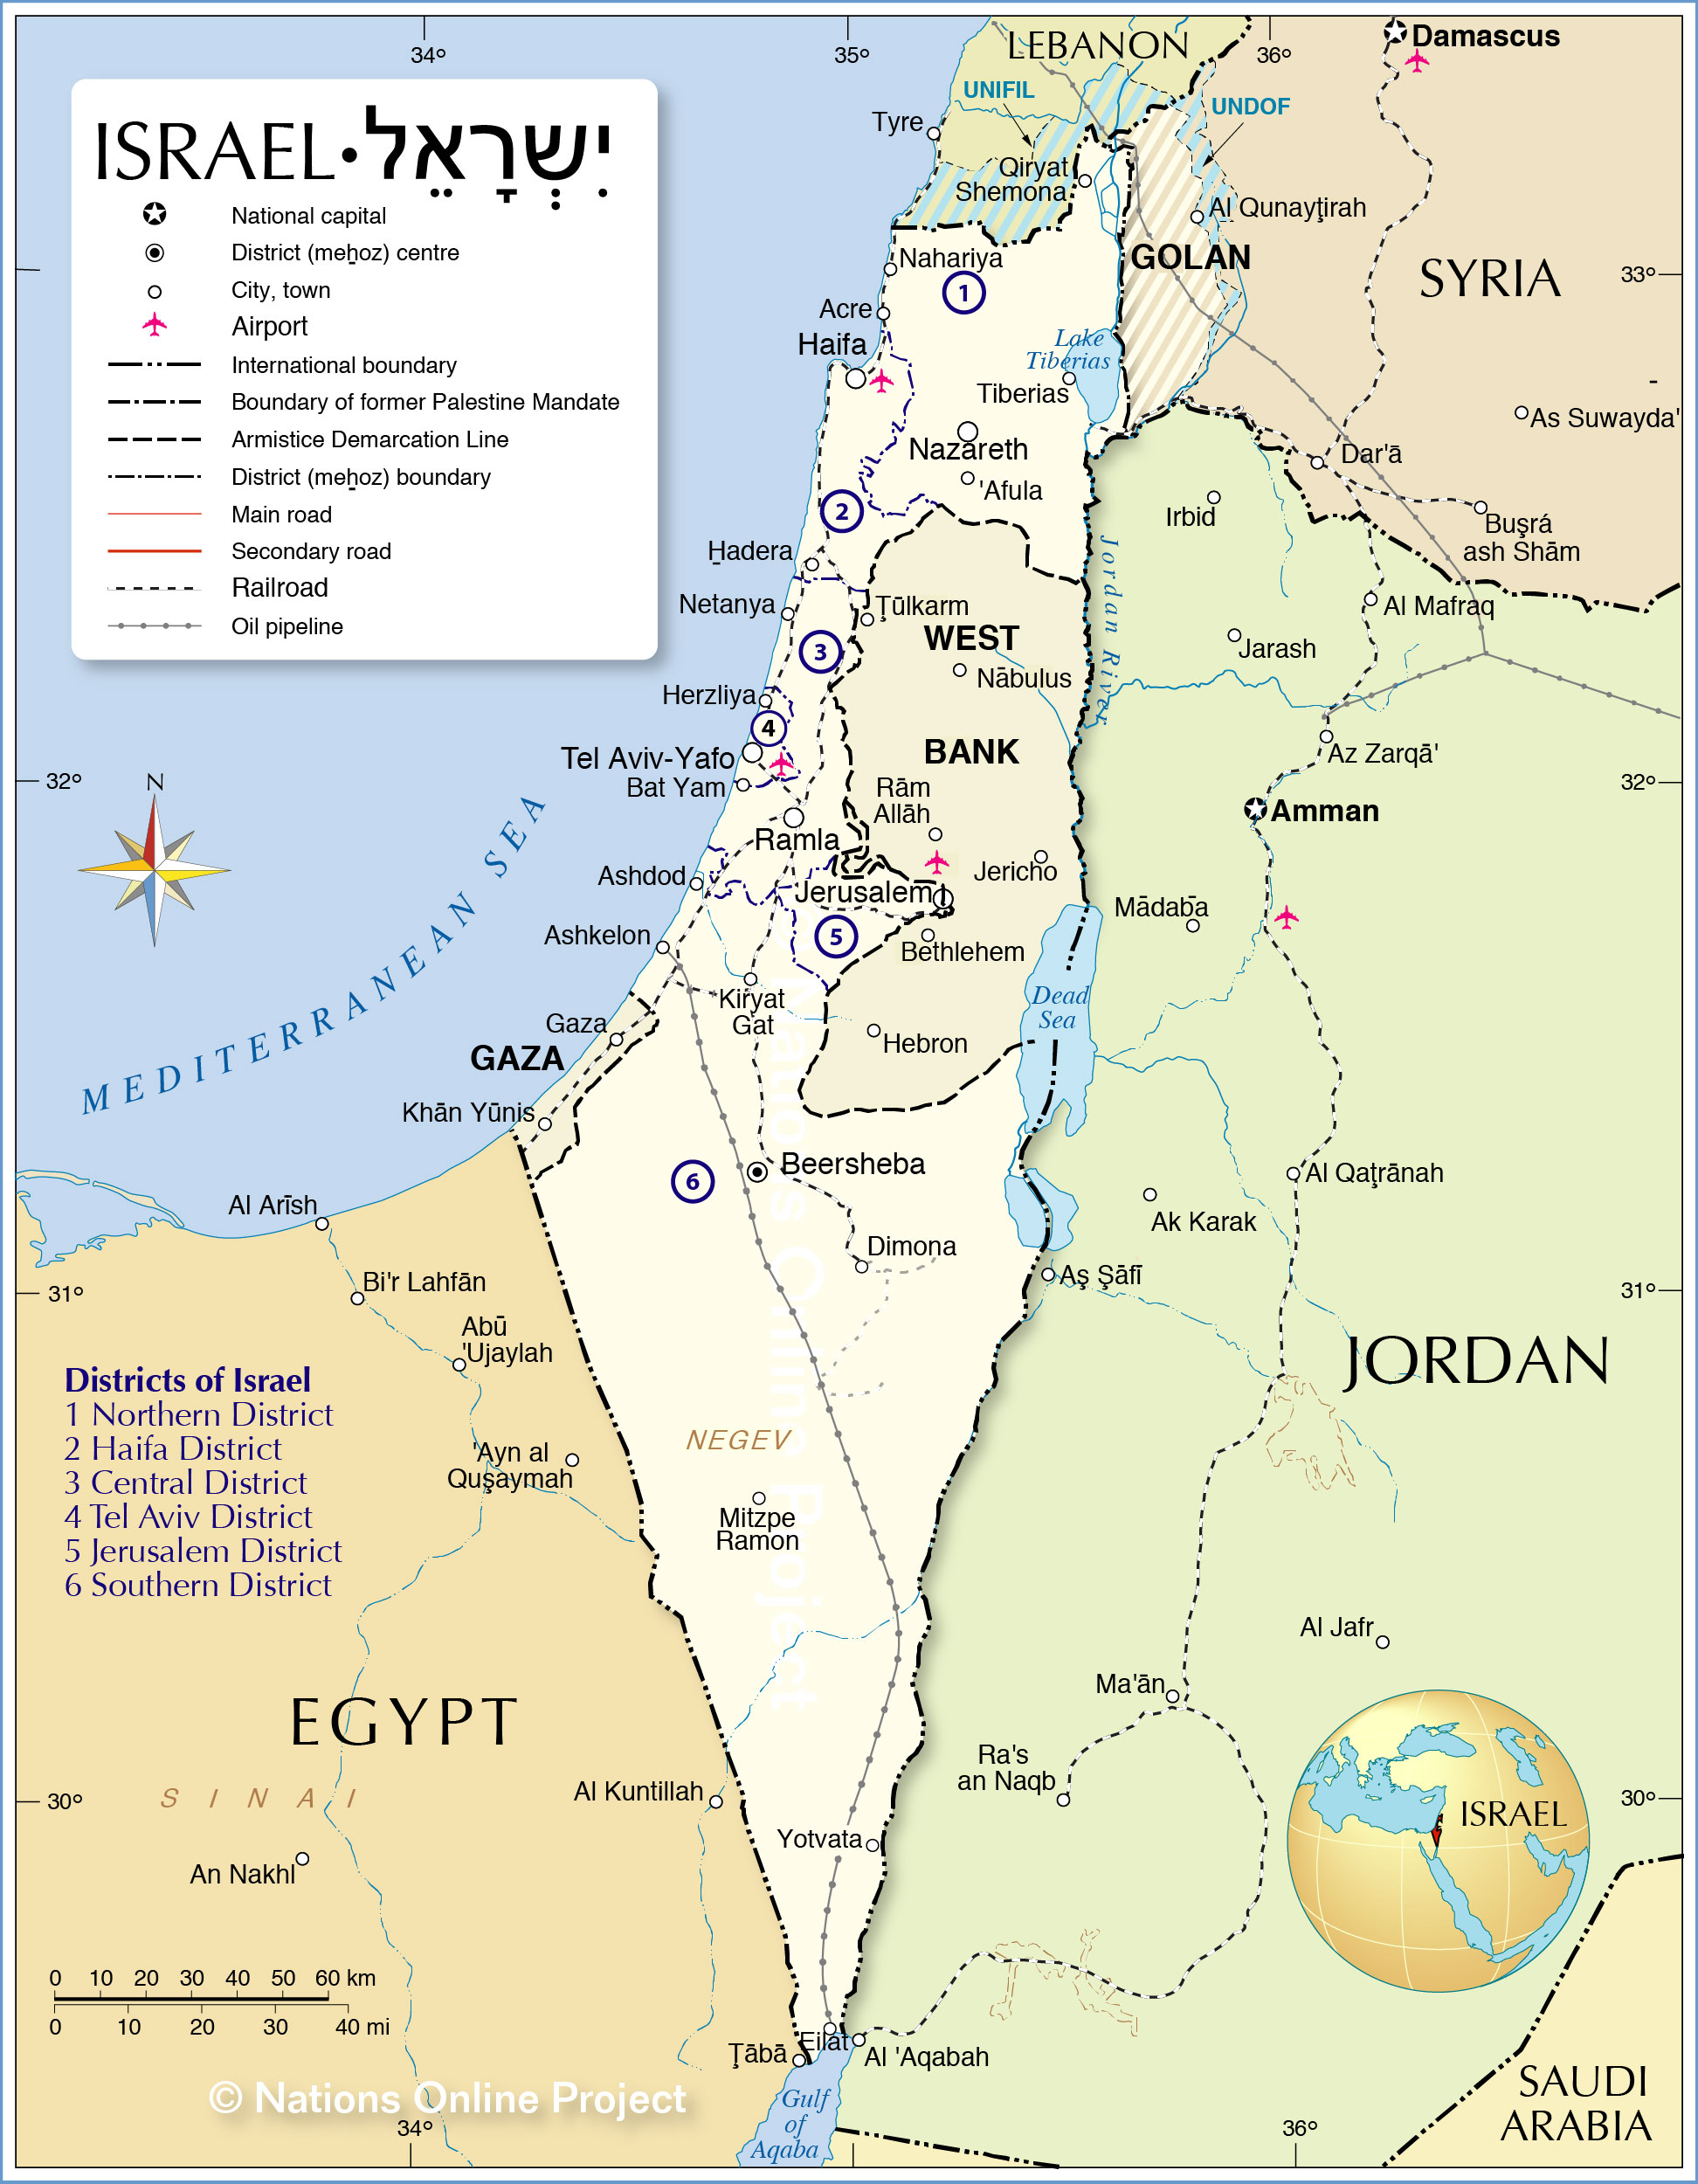 Political Map of Israel - Nations Online Project on biblical middle east map jordan, biblical cities of the bible, biblical maps then and now, biblical map of jordan, biblical map vs today's map, biblical world map, biblical maps with modern map overlay, biblical antioch map, biblical maps of rome, biblical maps of egypt, biblical mediterranean map of crete, biblical middle east map overlay, biblical map of macedonia greece, biblical maps of turkey, biblical map of iraq, biblical maps of europe, biblical lands of israel, people from the middle east, biblical map of africa, biblical israel map,